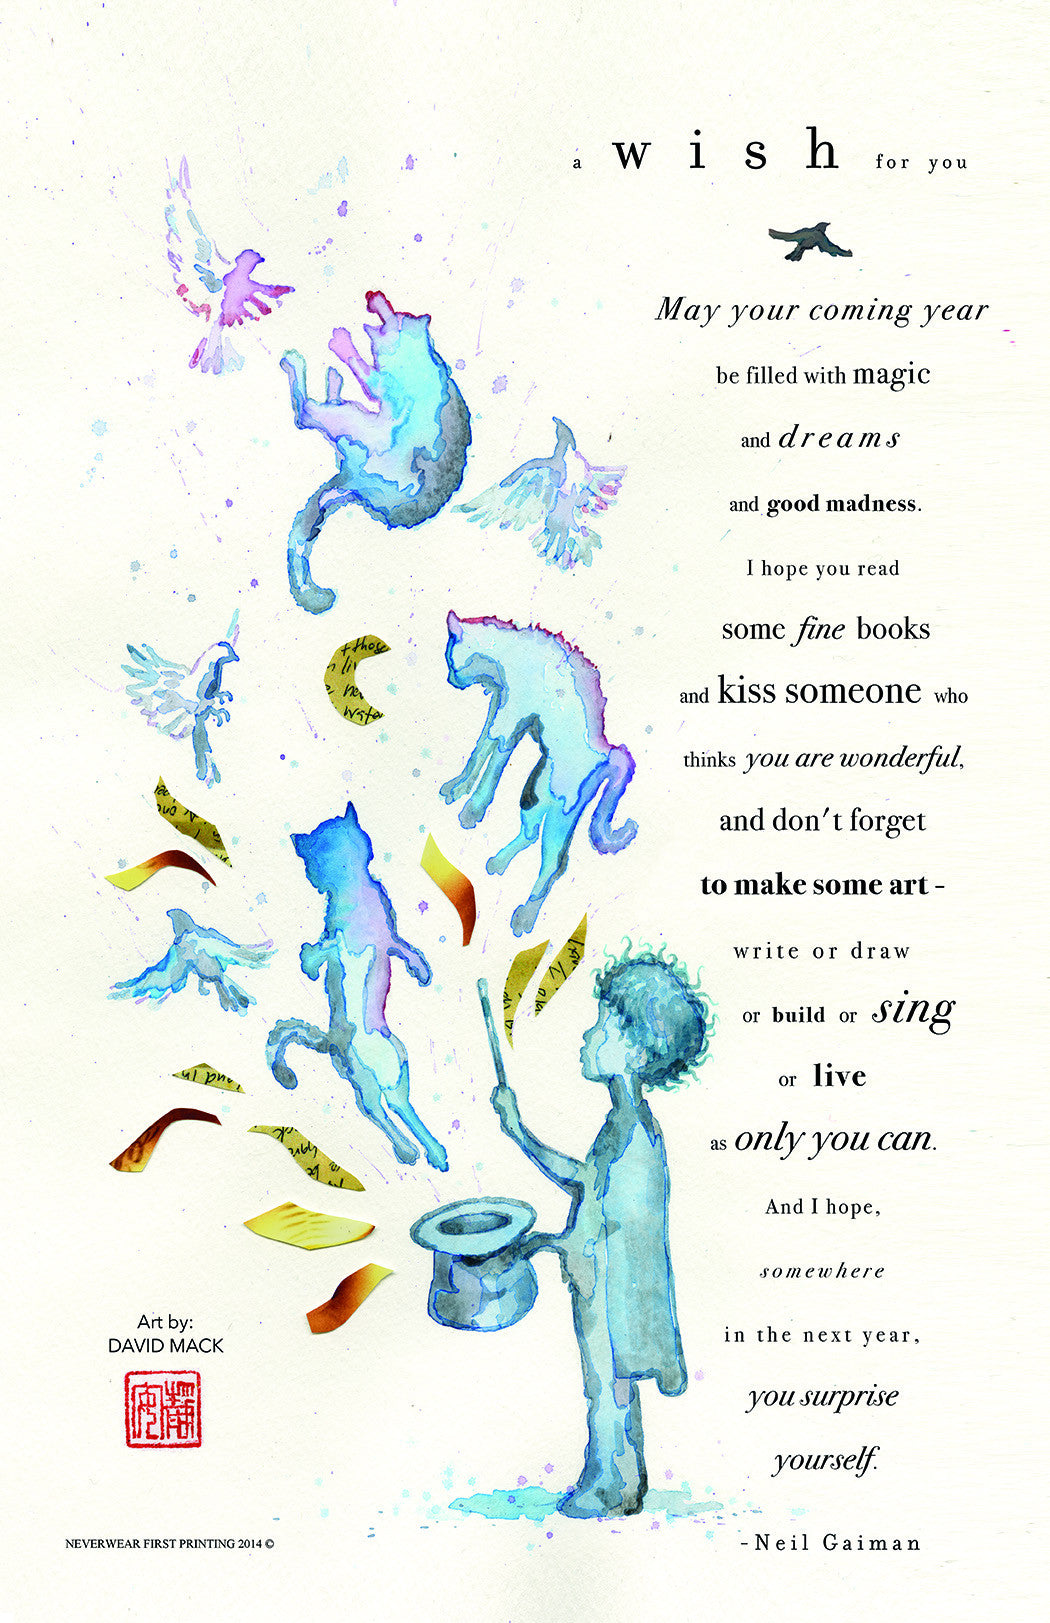 ALMOST GONE! Neil's New Year's Wish limited first edition print by David Mack